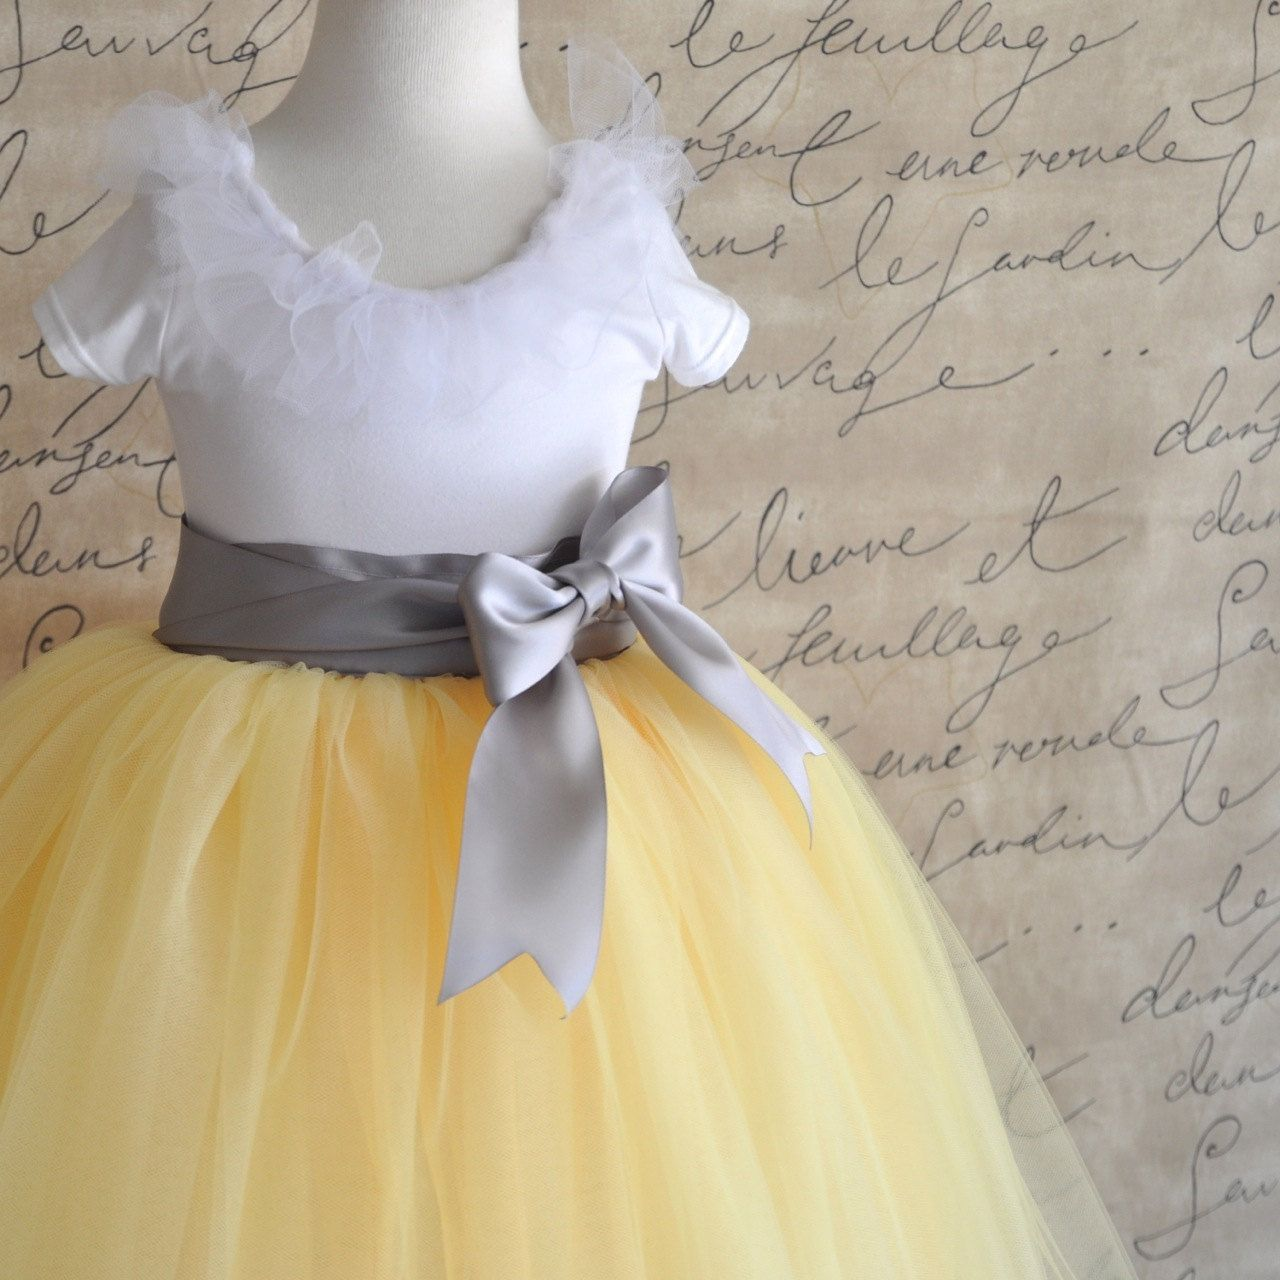 Flower shop near me yellow flower girl dresses for toddlers yellow flower girl dresses for toddlers the flowers are very beautiful here we provide a collections of various pictures of beautiful flowers charming mightylinksfo